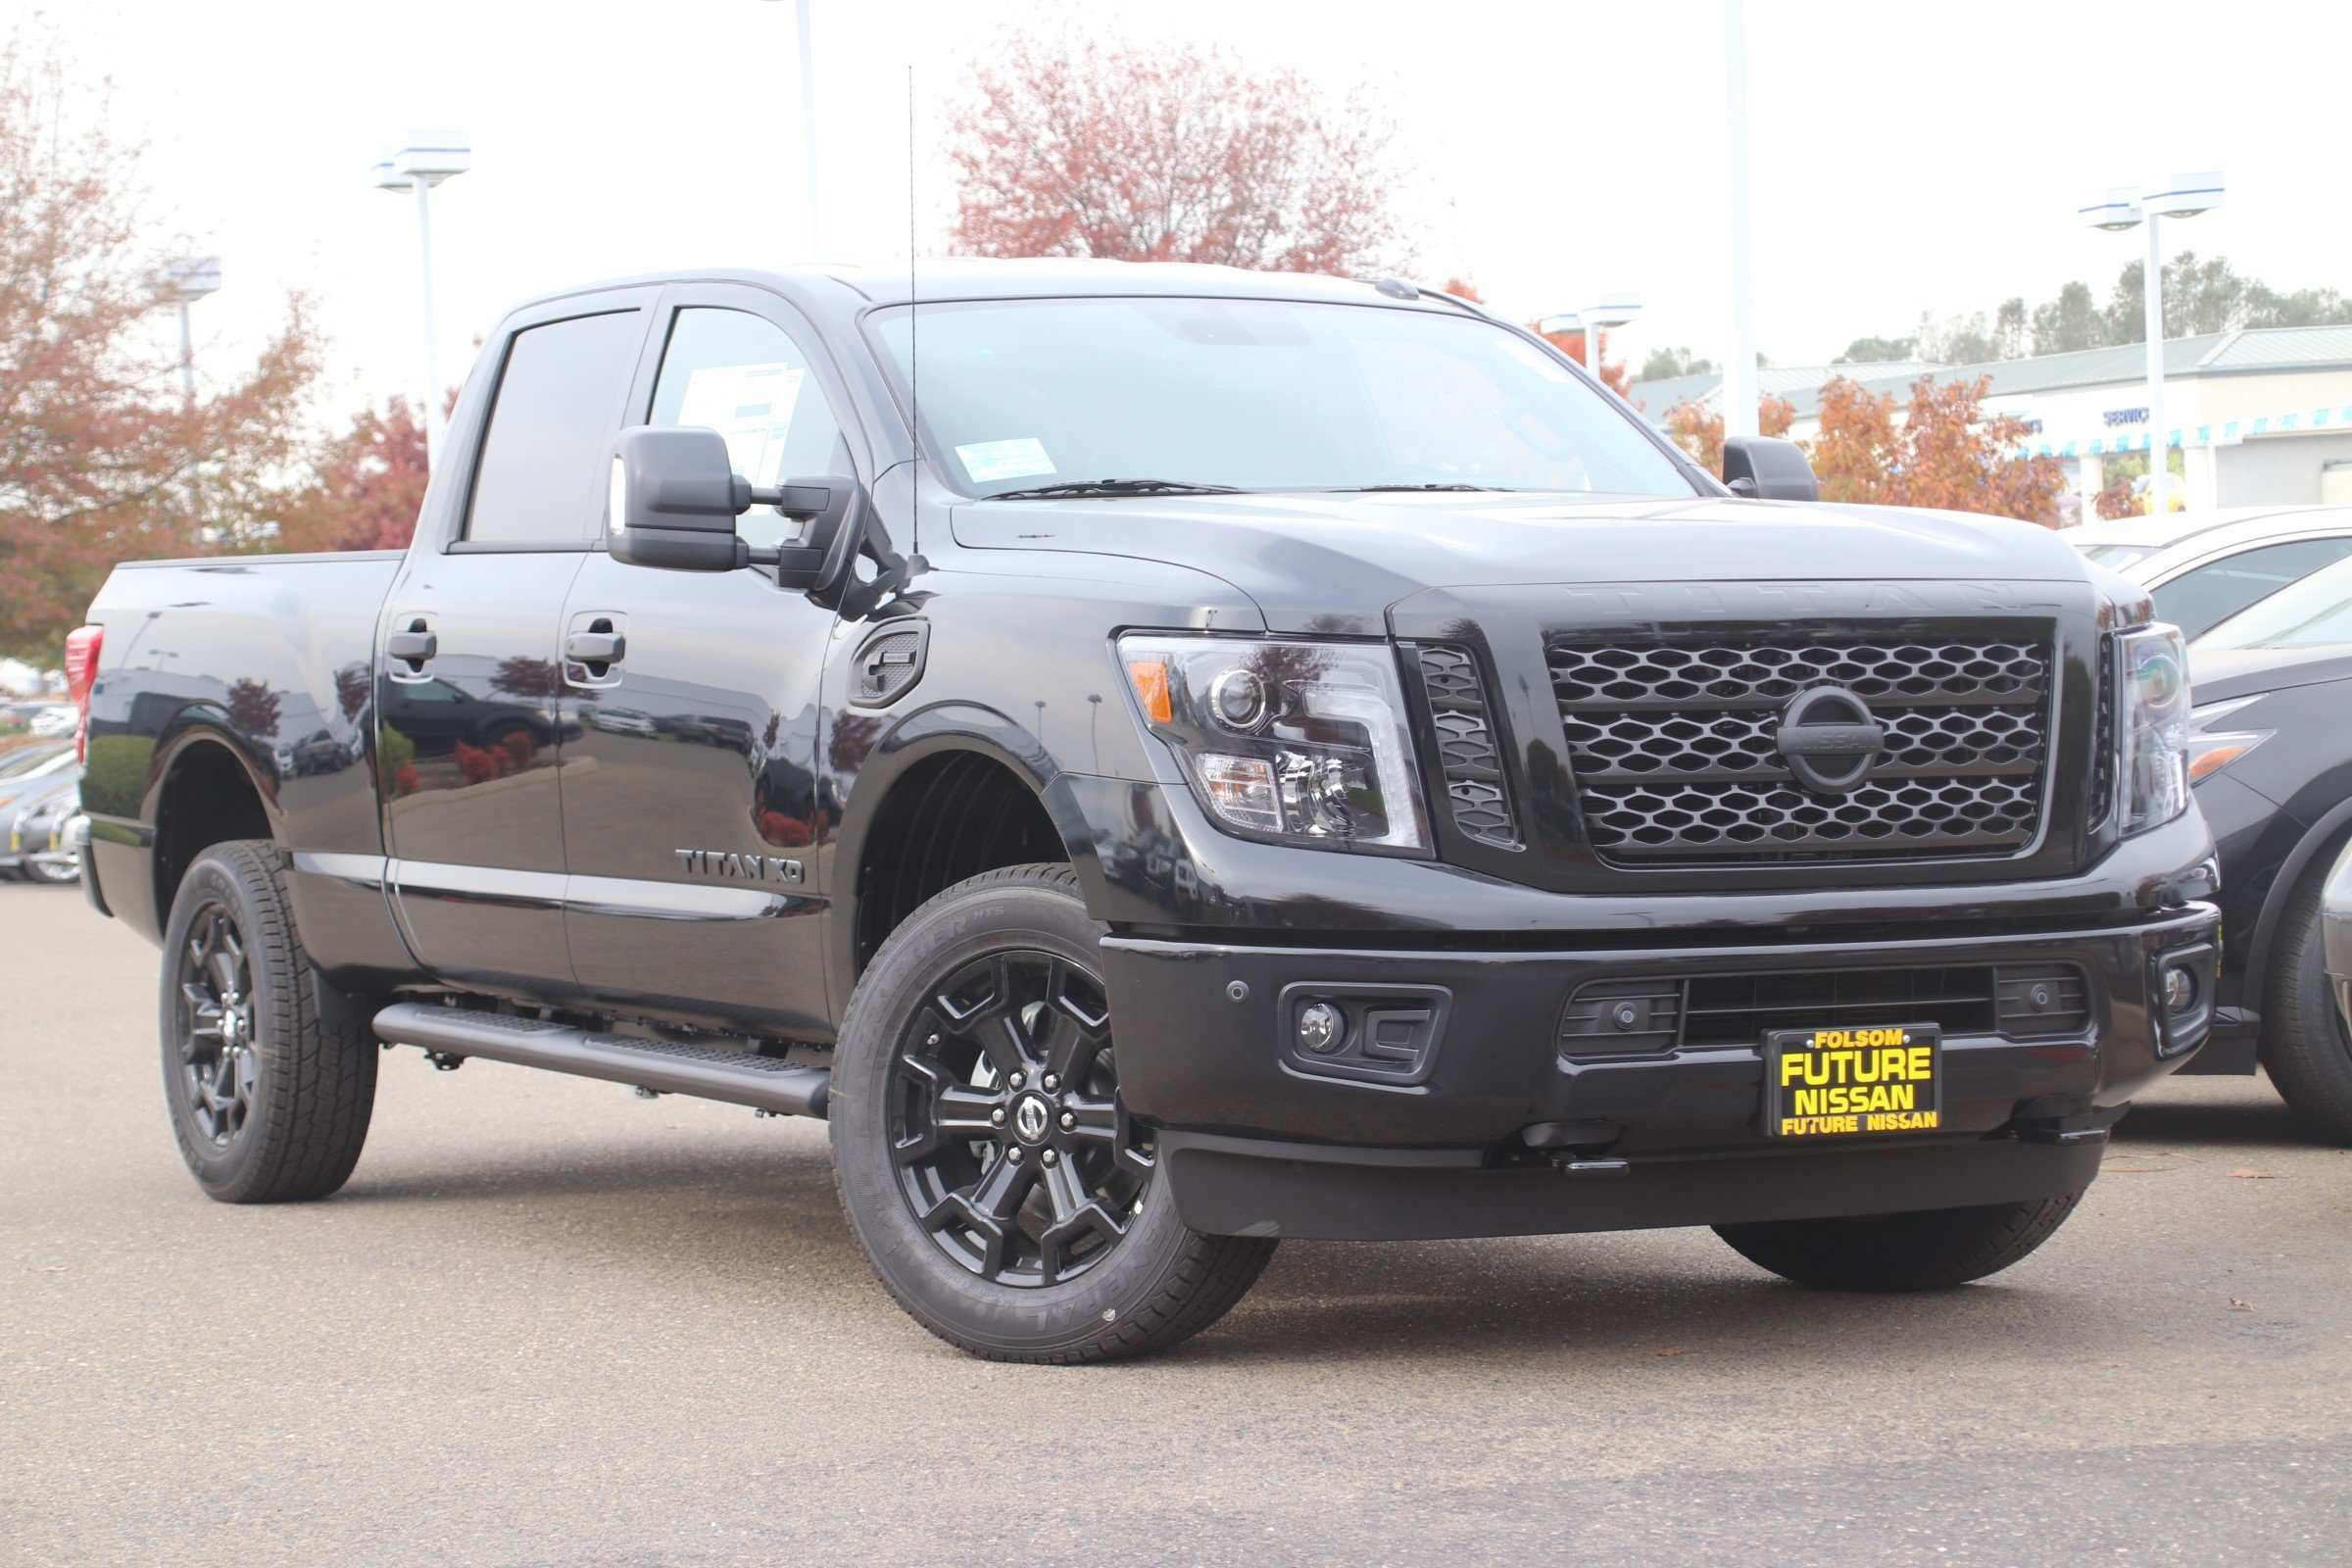 56 Great 2019 Nissan Titan Interior 2 Performance for 2019 Nissan Titan Interior 2